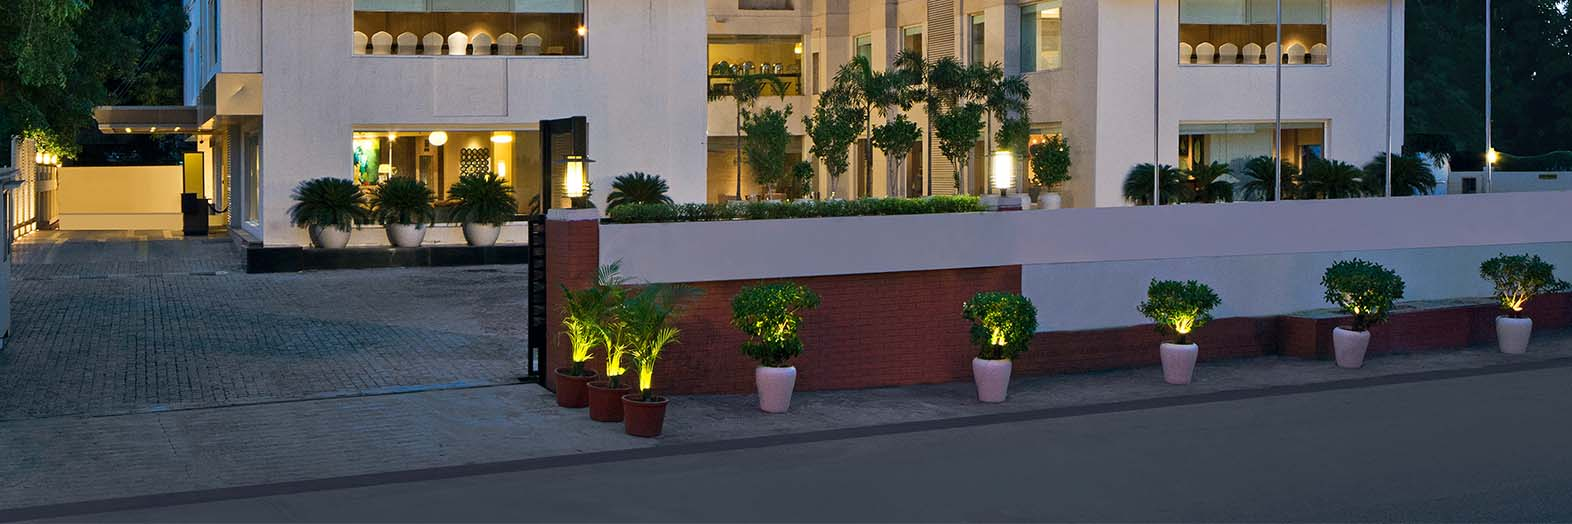 Hotels in Ahmedabad - Fortune Park